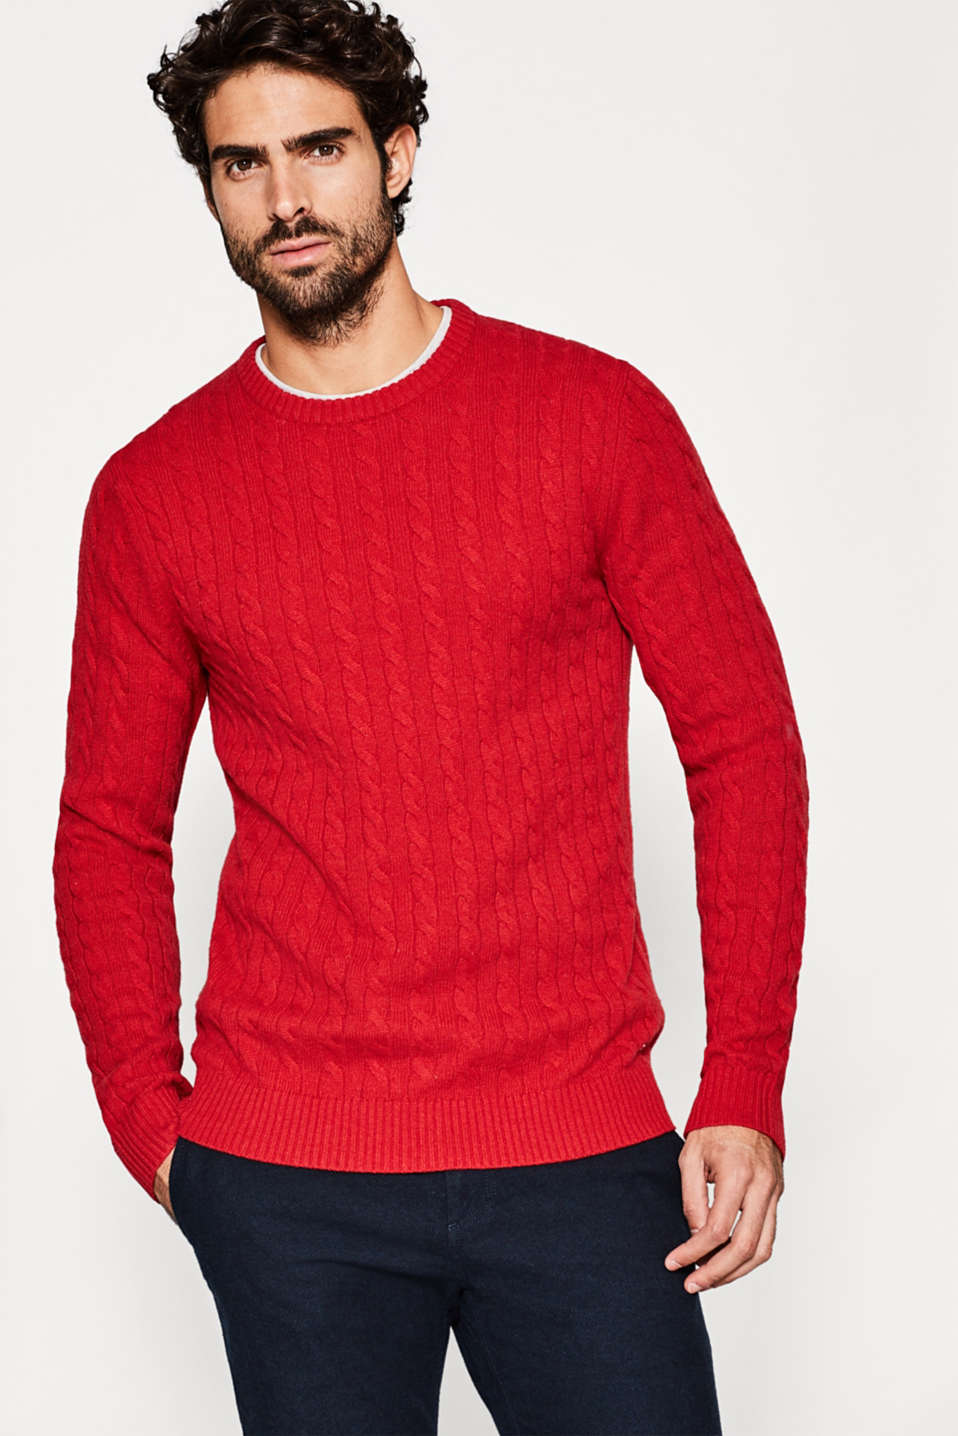 Esprit - Cable knit jumper, in 100% wool